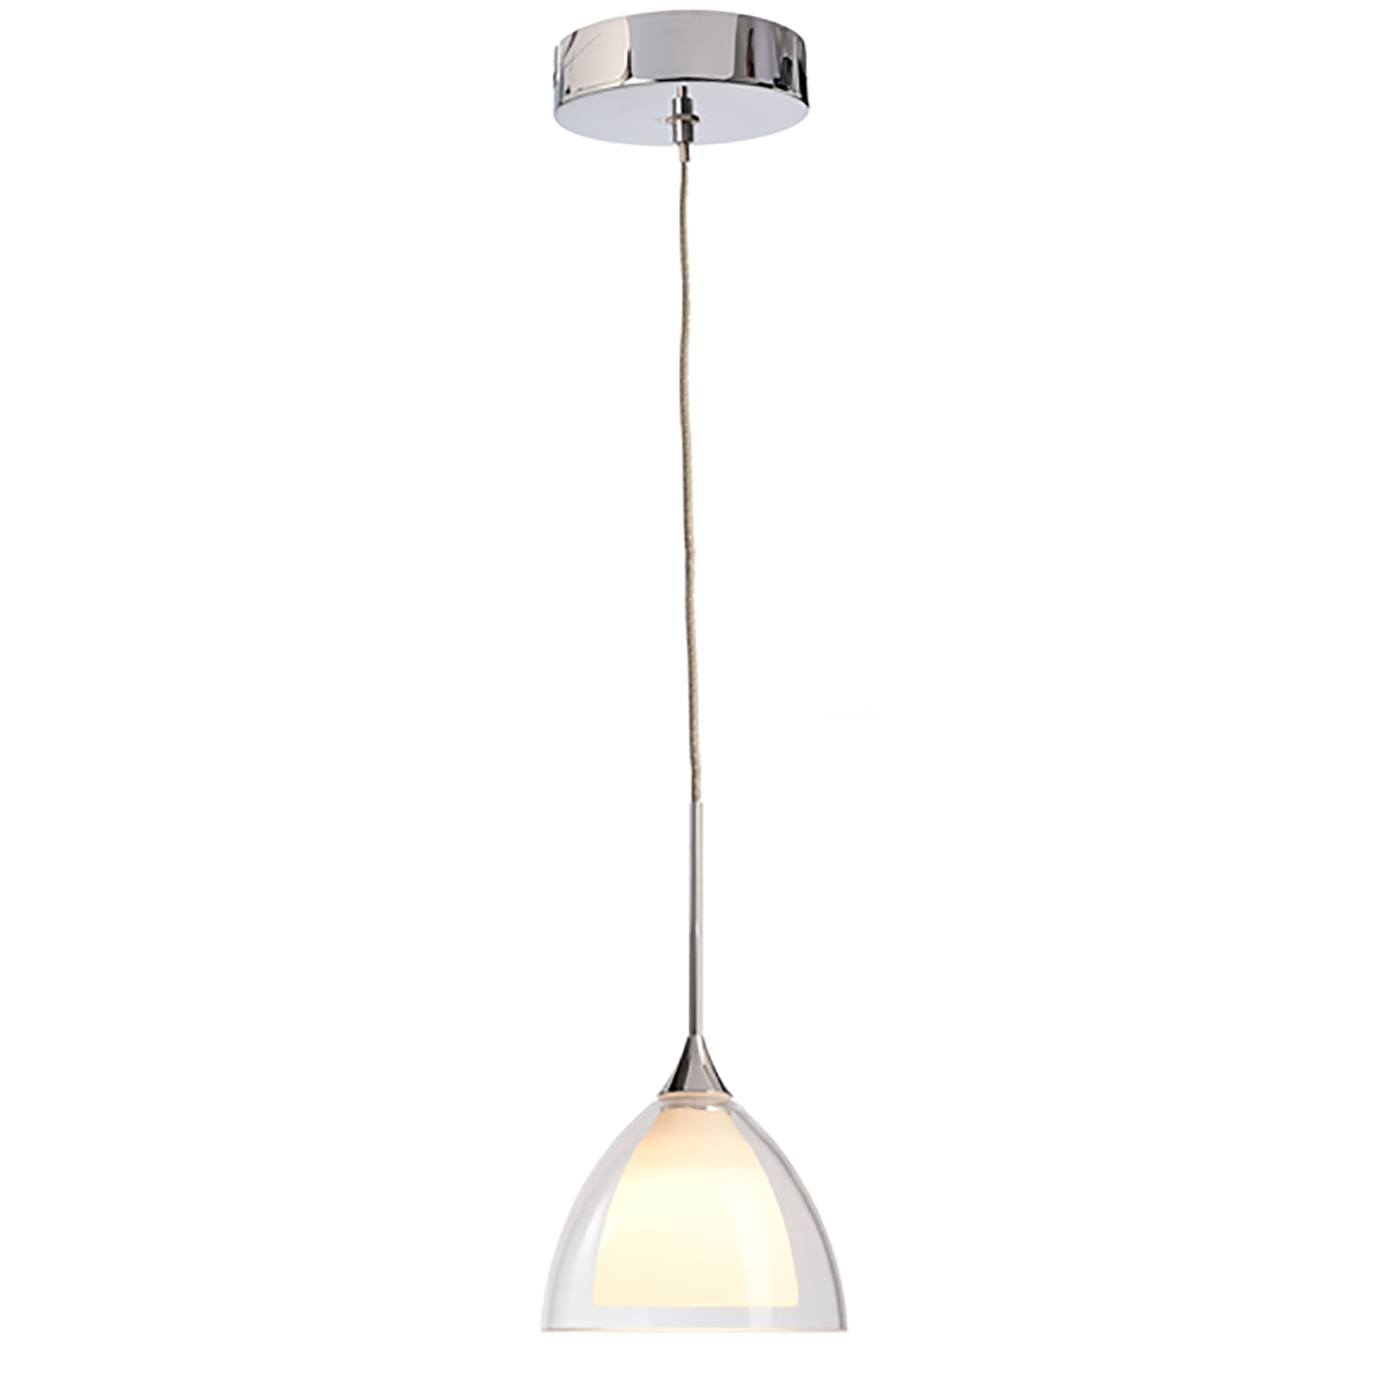 Bell pendant glass chandelier suspension 1M lamp, led 5W modern 3000K